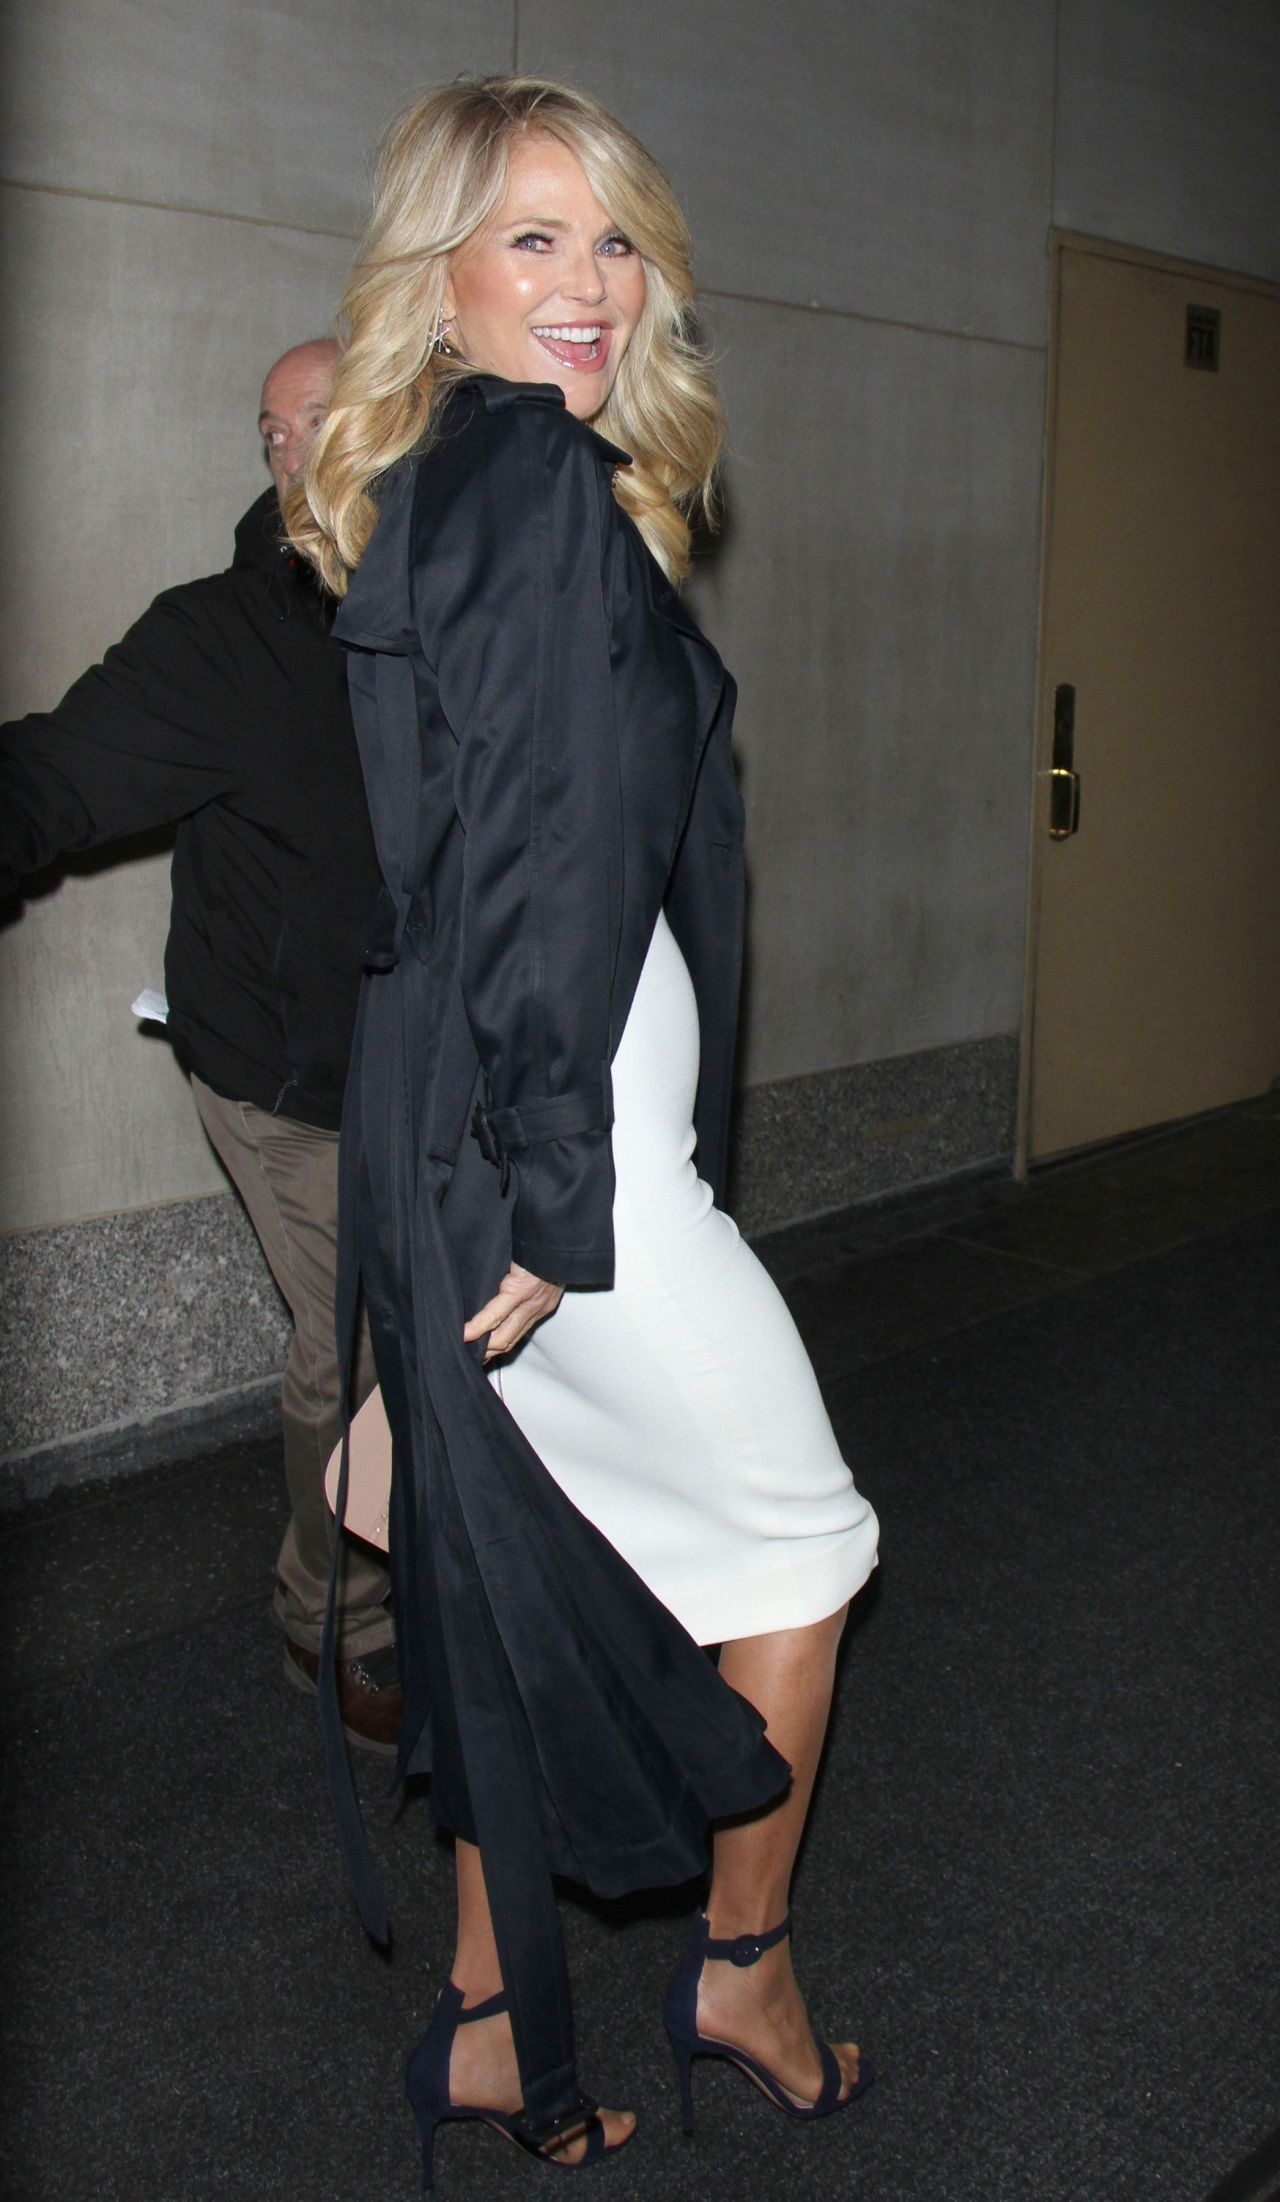 Christie Brinkley Arriving To Appear On Today Show In New